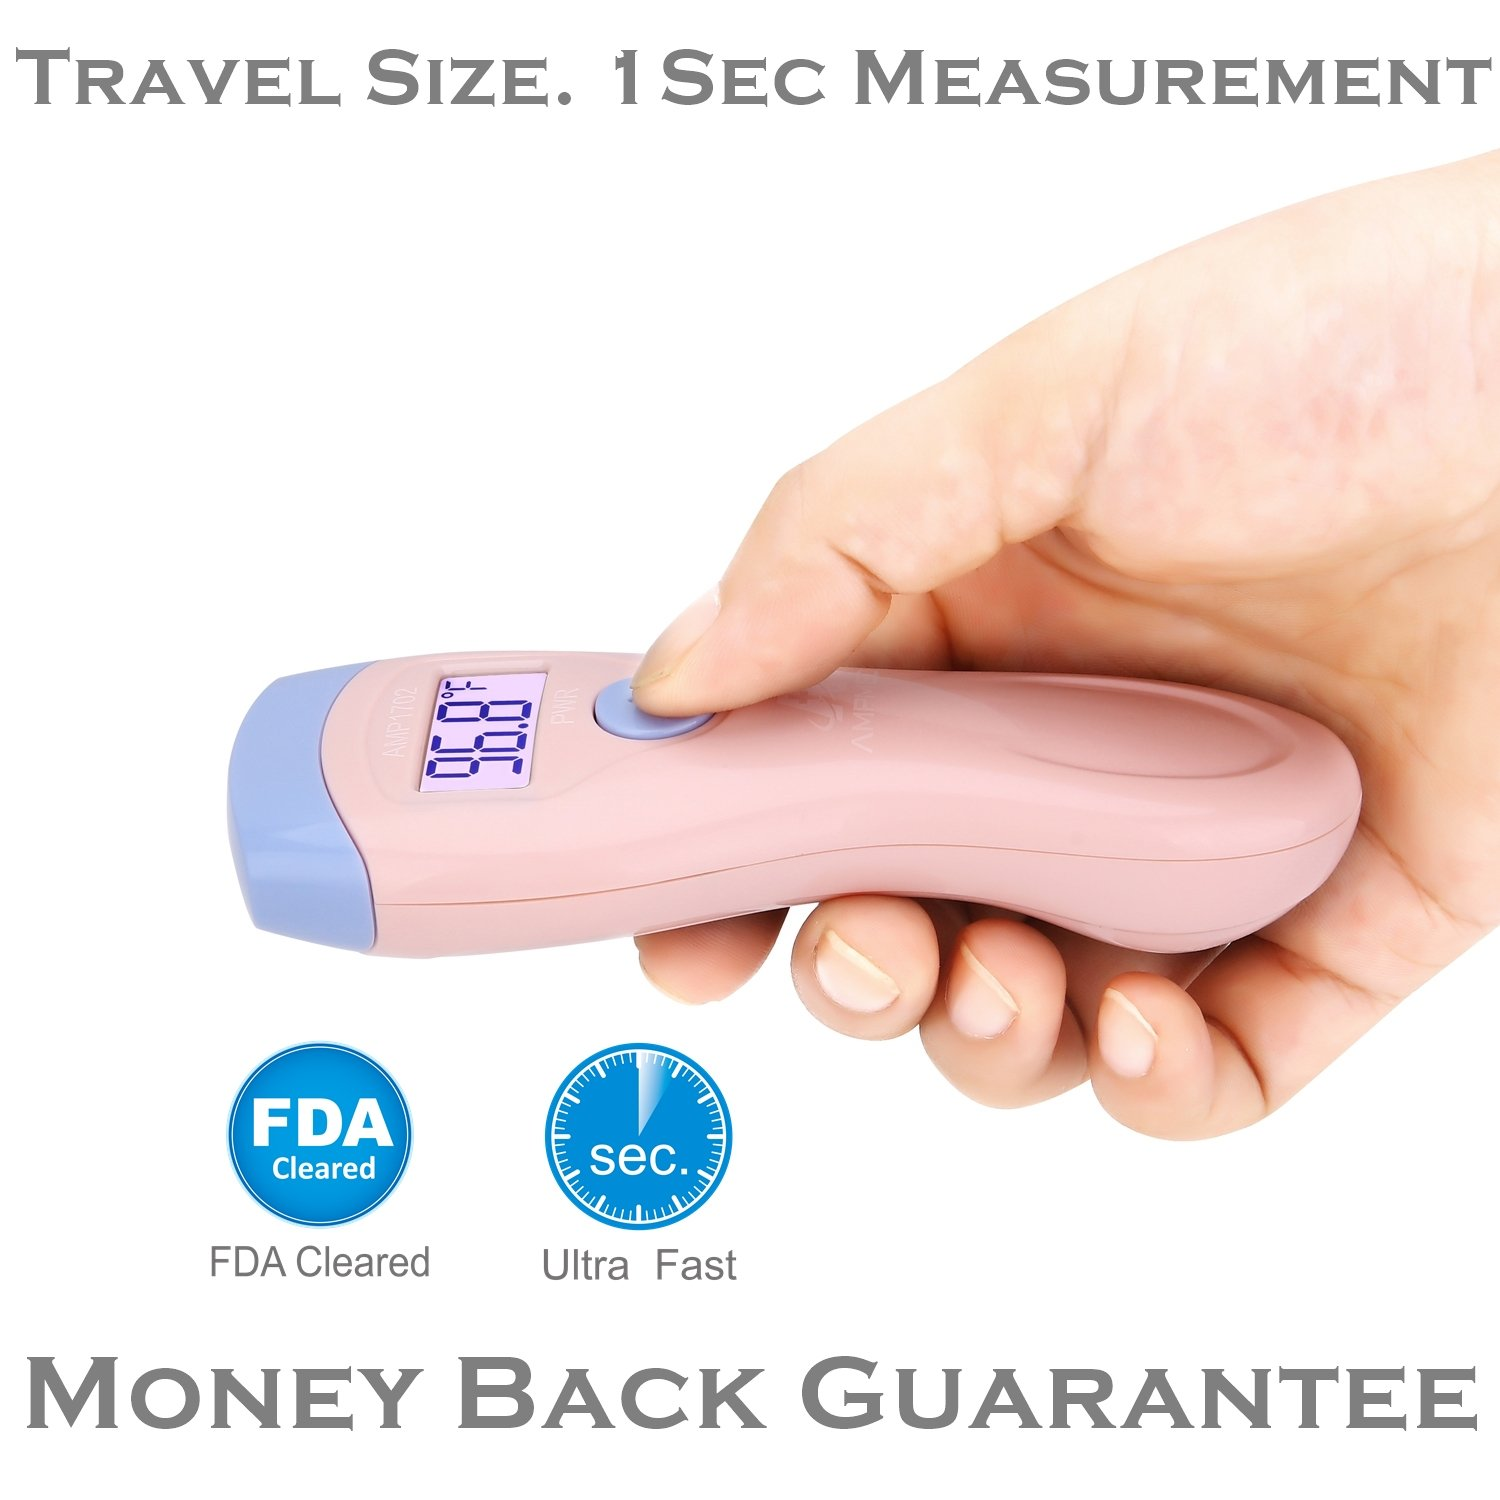 Amplim CE FDA Approved Medical Hospital Grade Non Contact Infrared Forehead Thermometer. Best New Baby/Kid/Infant/Toddler/Child/Adult/Professional/Clinical Digital No Touch Travel Fever Thermometer